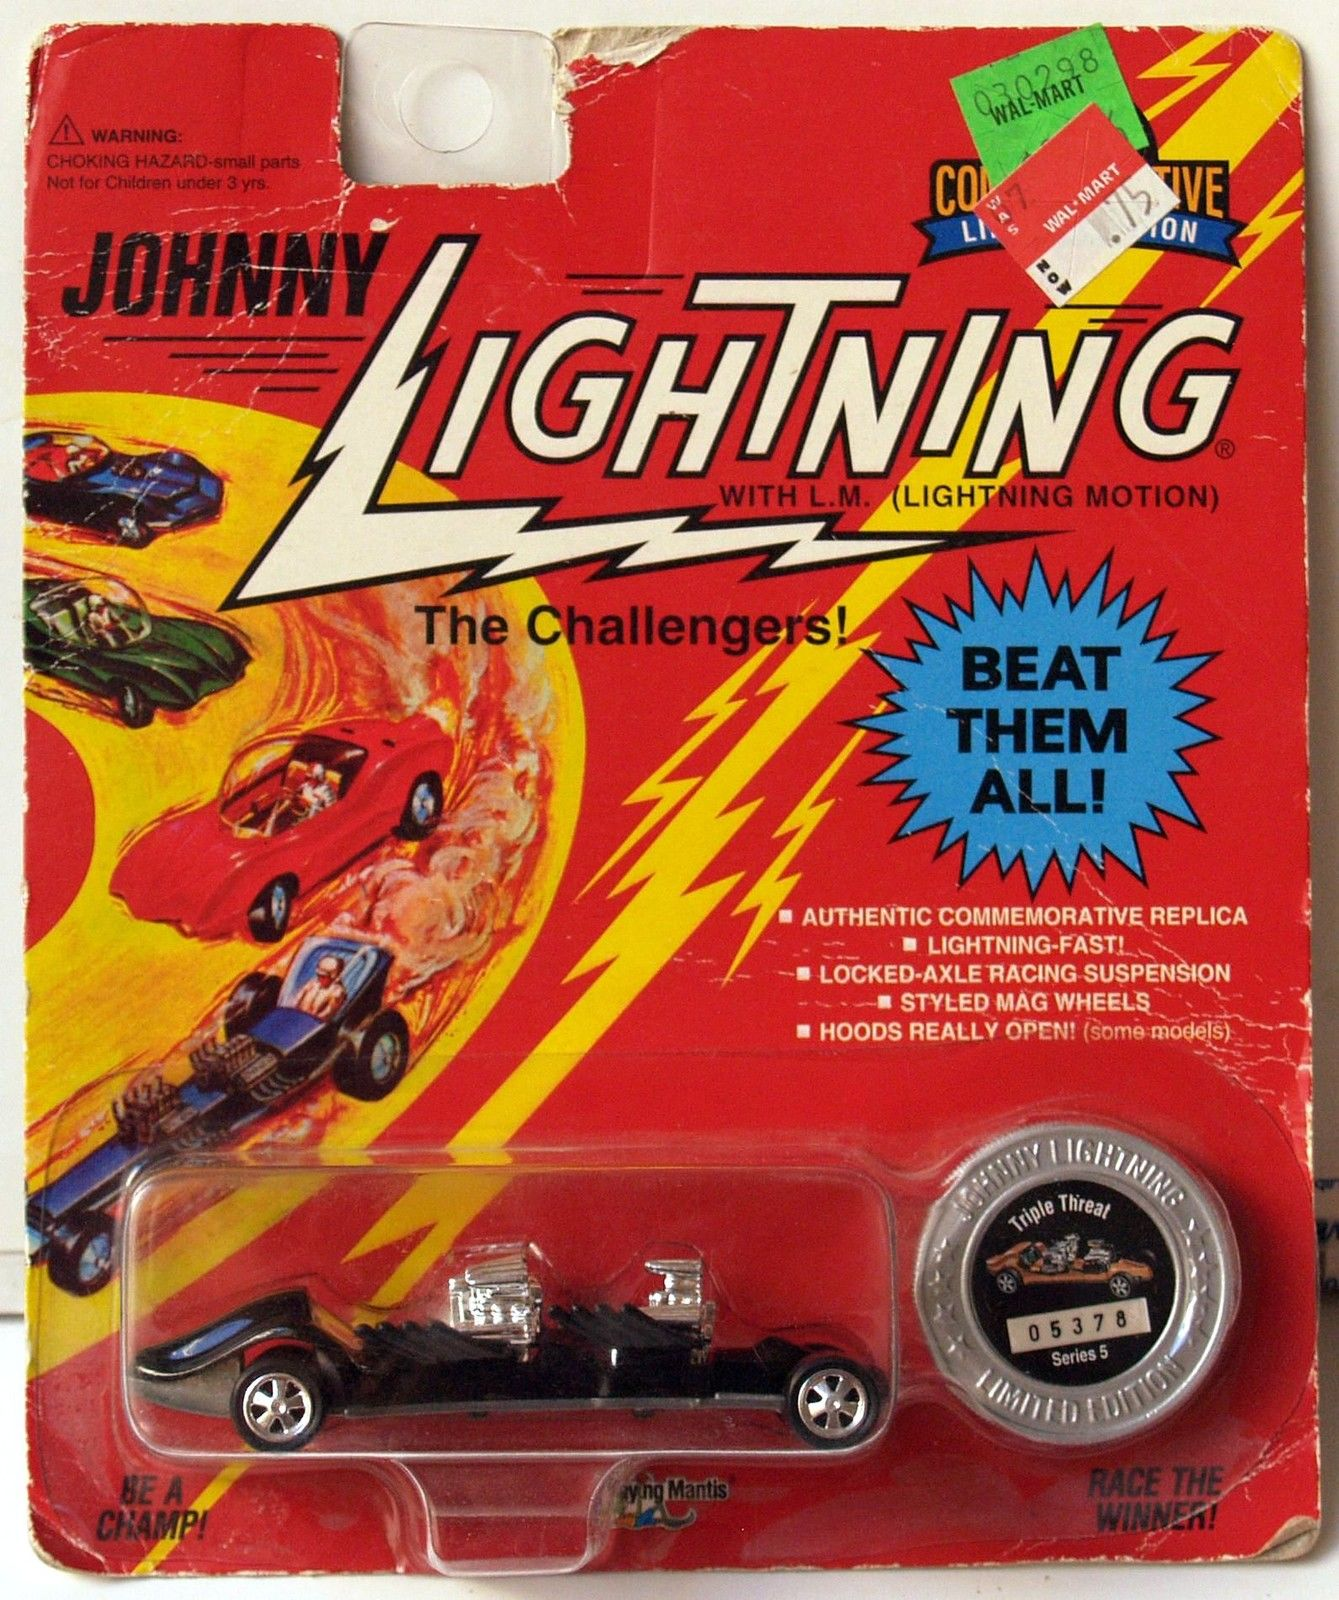 JOHNNY LIGHTNING COMMEMORATIVE - BLACK TRIPLE THREAT - SERIES 5 E+